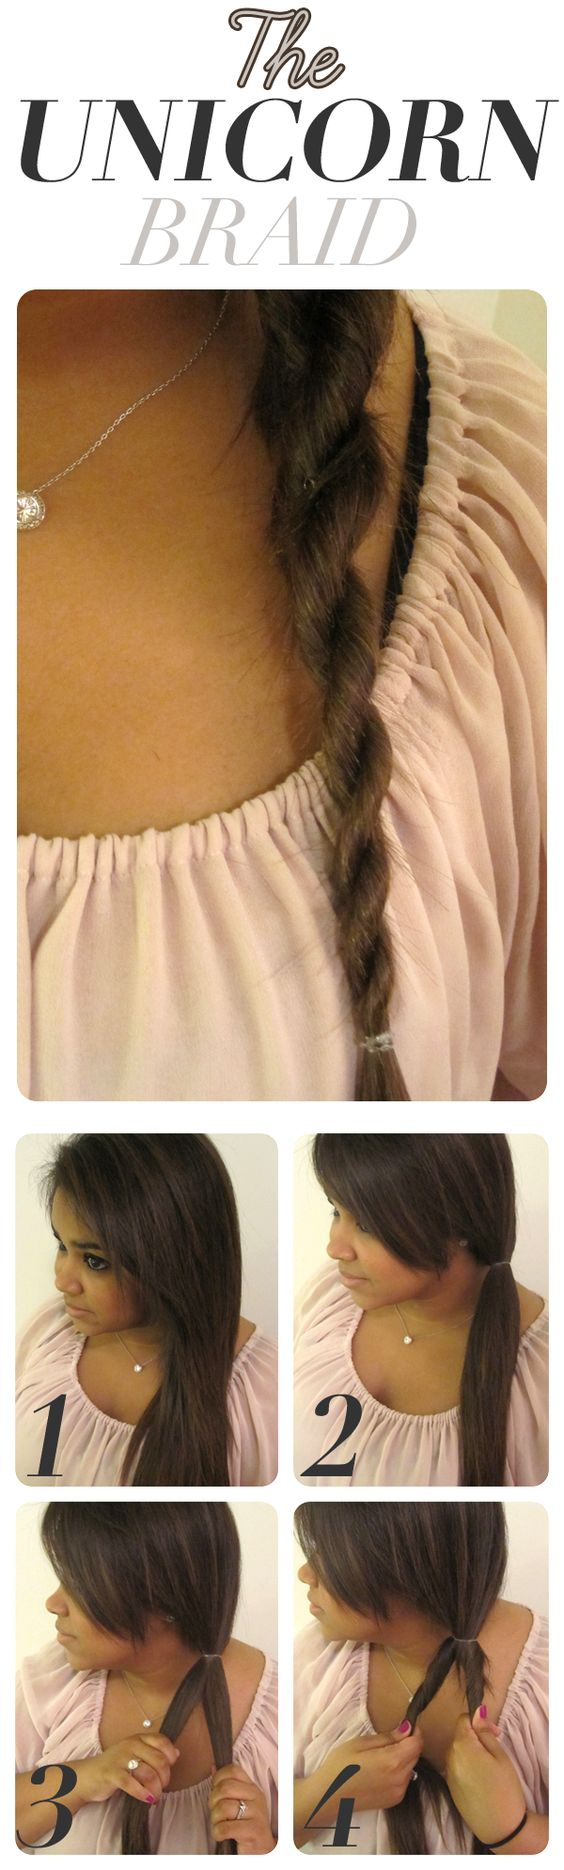 Kouturekiss - The Unicorn Braid:  Wrap the two sections around each other while still tightly twisting the pieces as you go. When you reach the end/tips of your hair, quickly secure with an elastic.